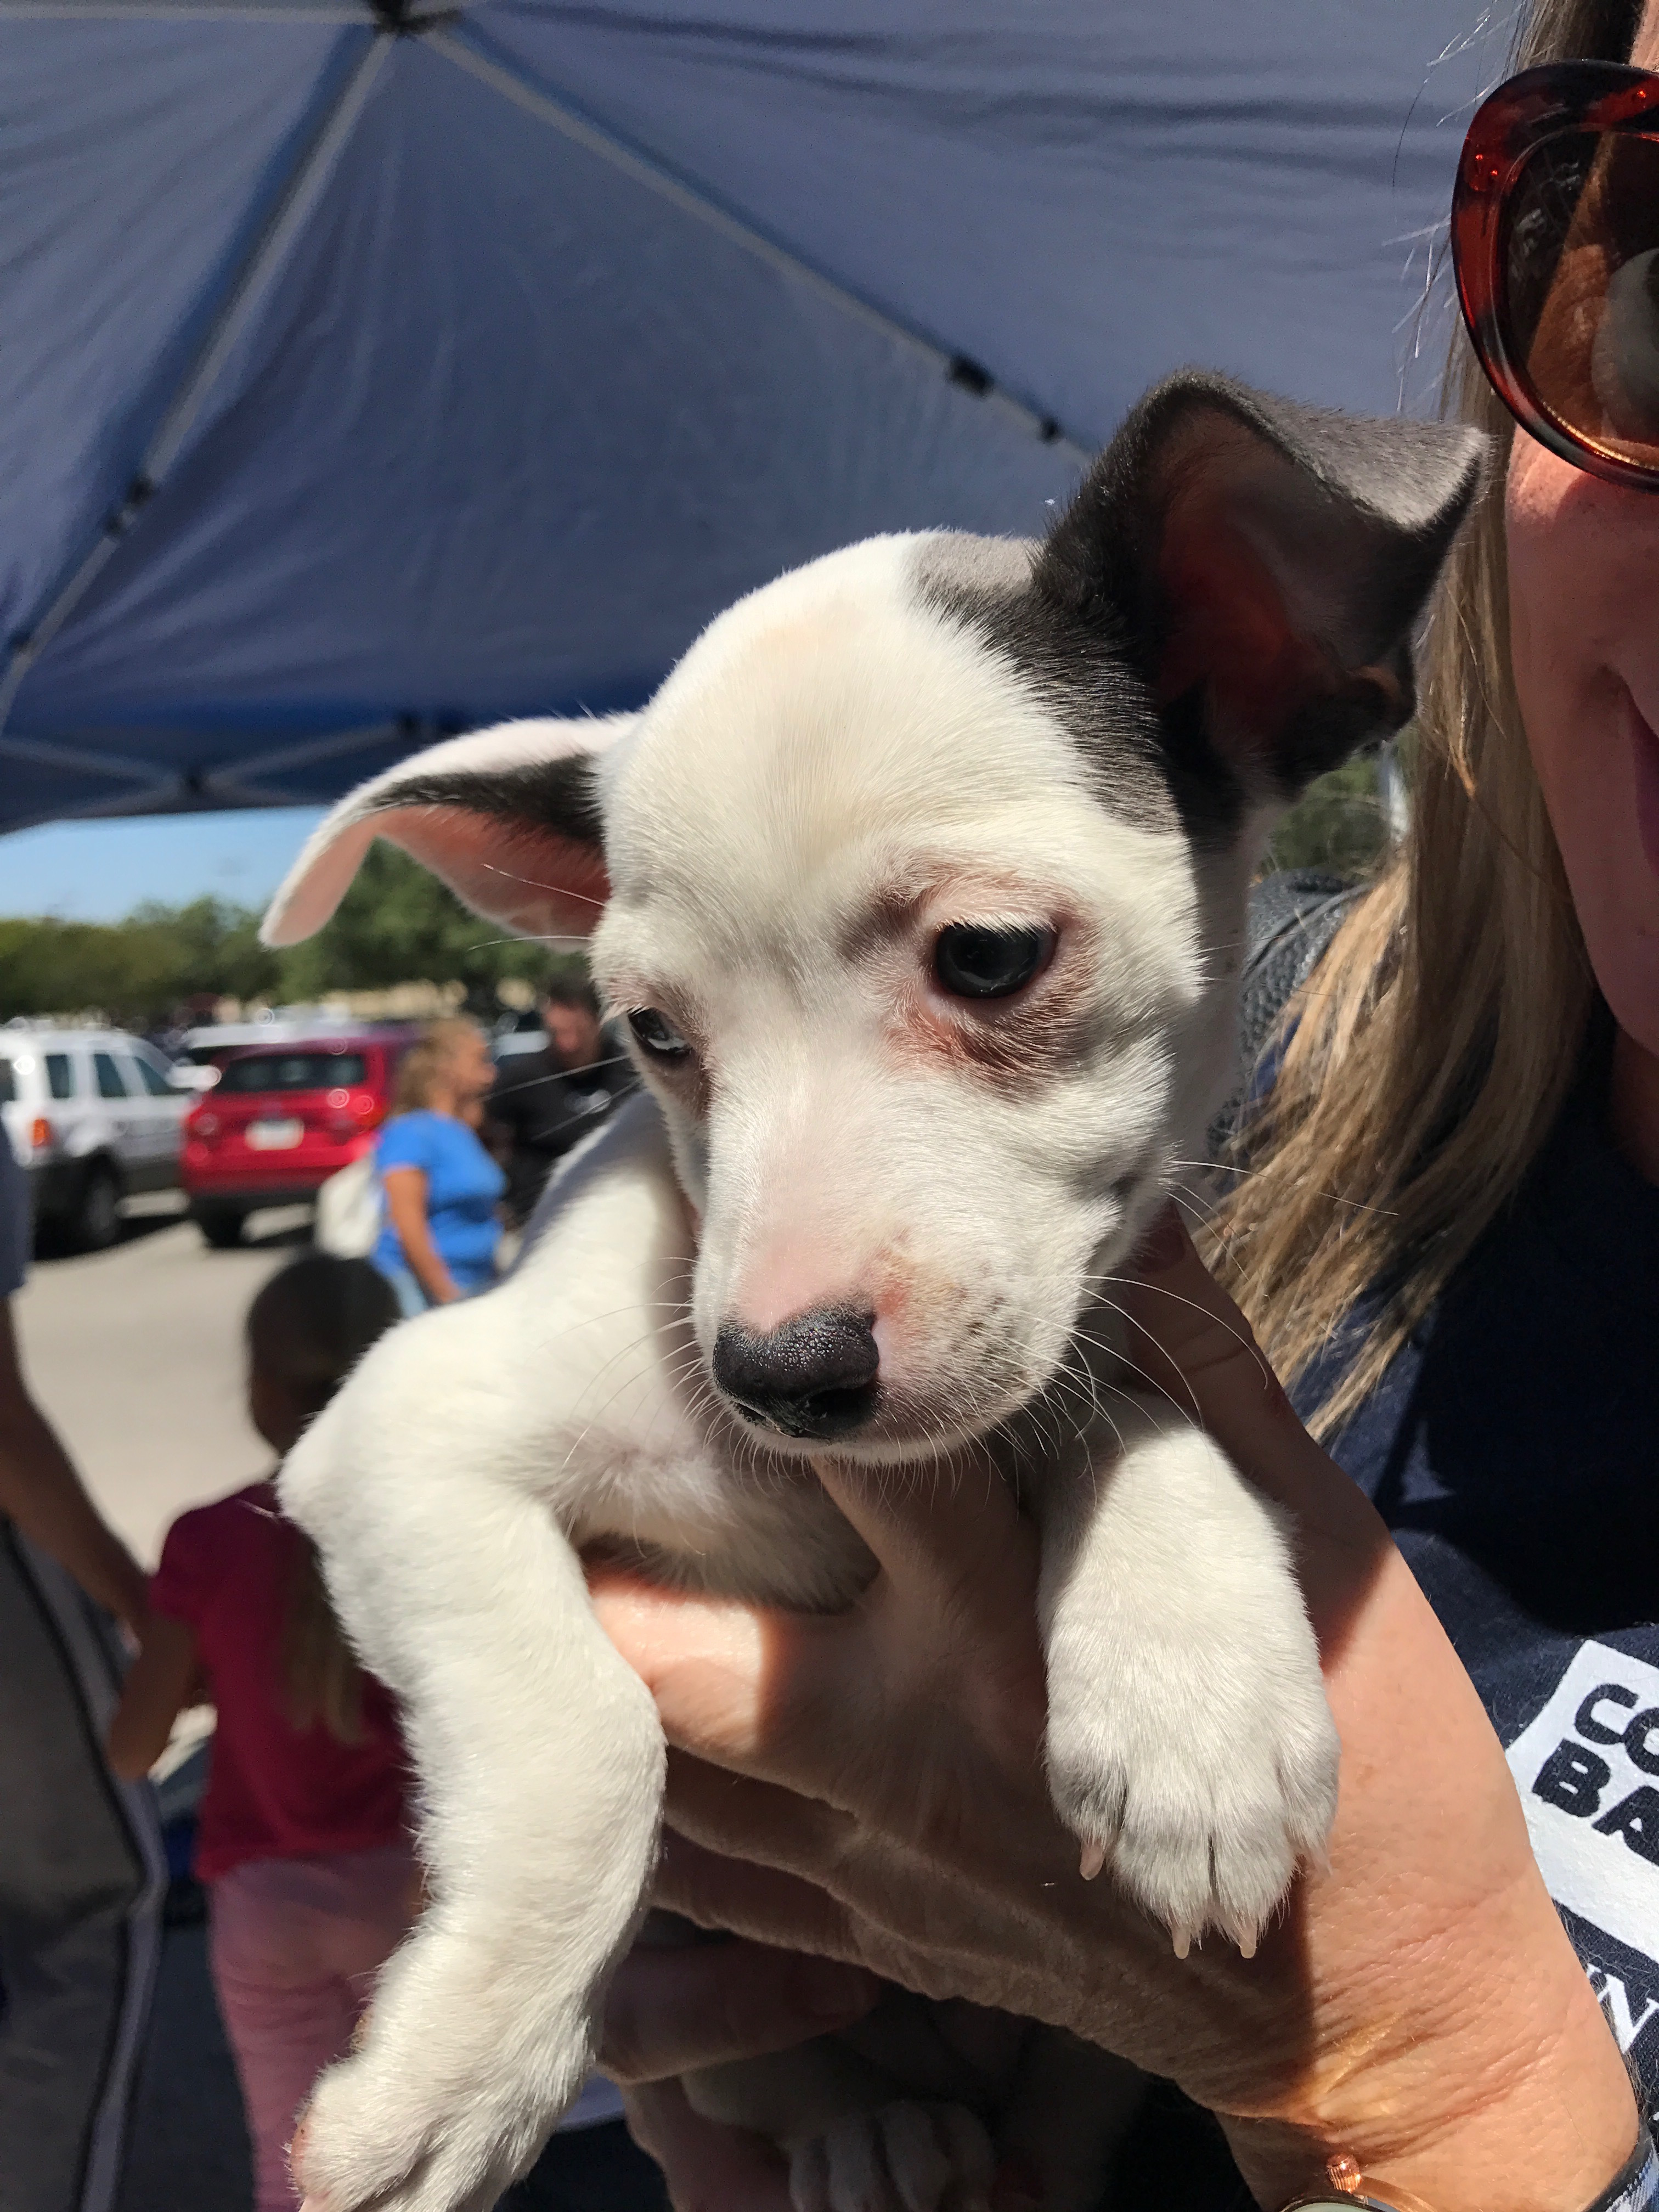 Adoptable puppy named 'Moana'